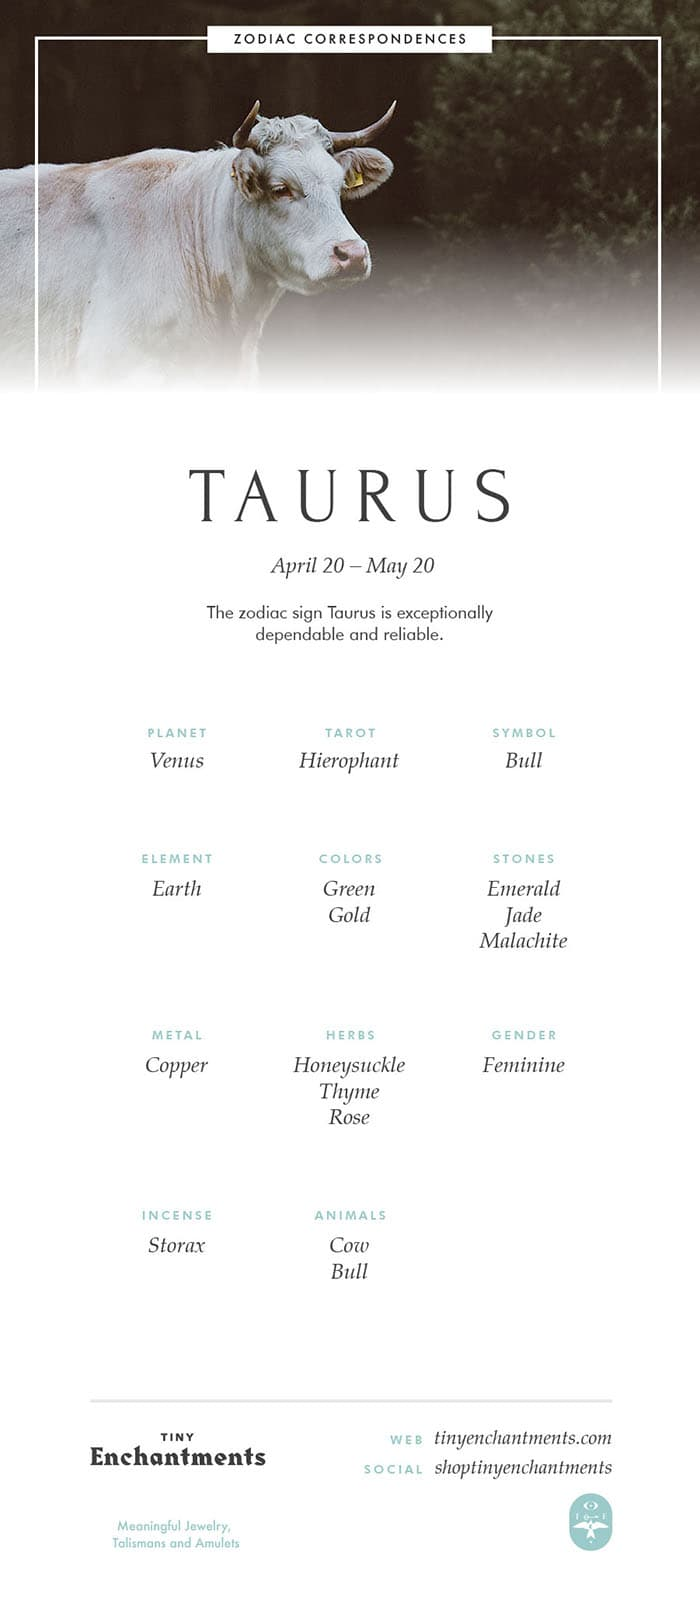 Taurus Zodiac Sign Correspondences - Taurus Personality, Taurus Symbol, Taurus Mythology and Taurus Meaning Full Infographic